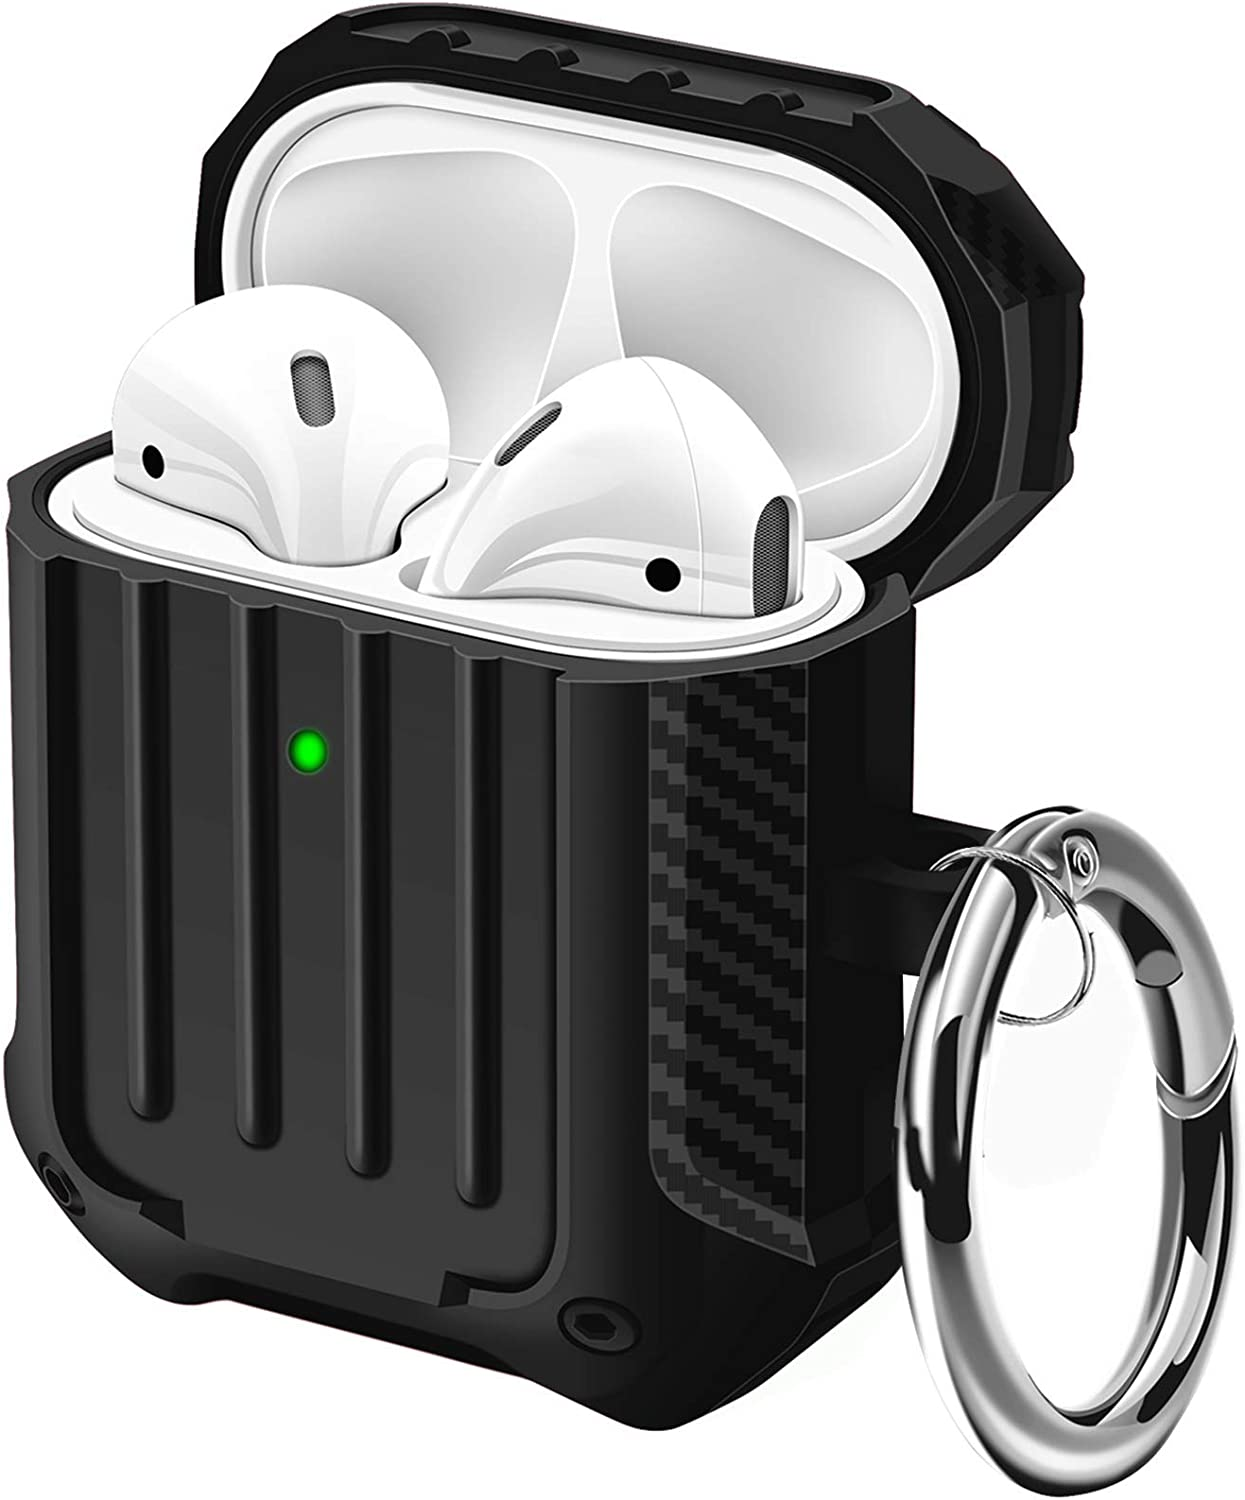 Maxjoy Airpods Case Carbon Fiber Texture TPU Gel Case Dustproof Protective Case Cover for Apple Airpods 2 with Keychain Full-Body Rugged Shockproof Airpods Wireless Charging Case (Black)